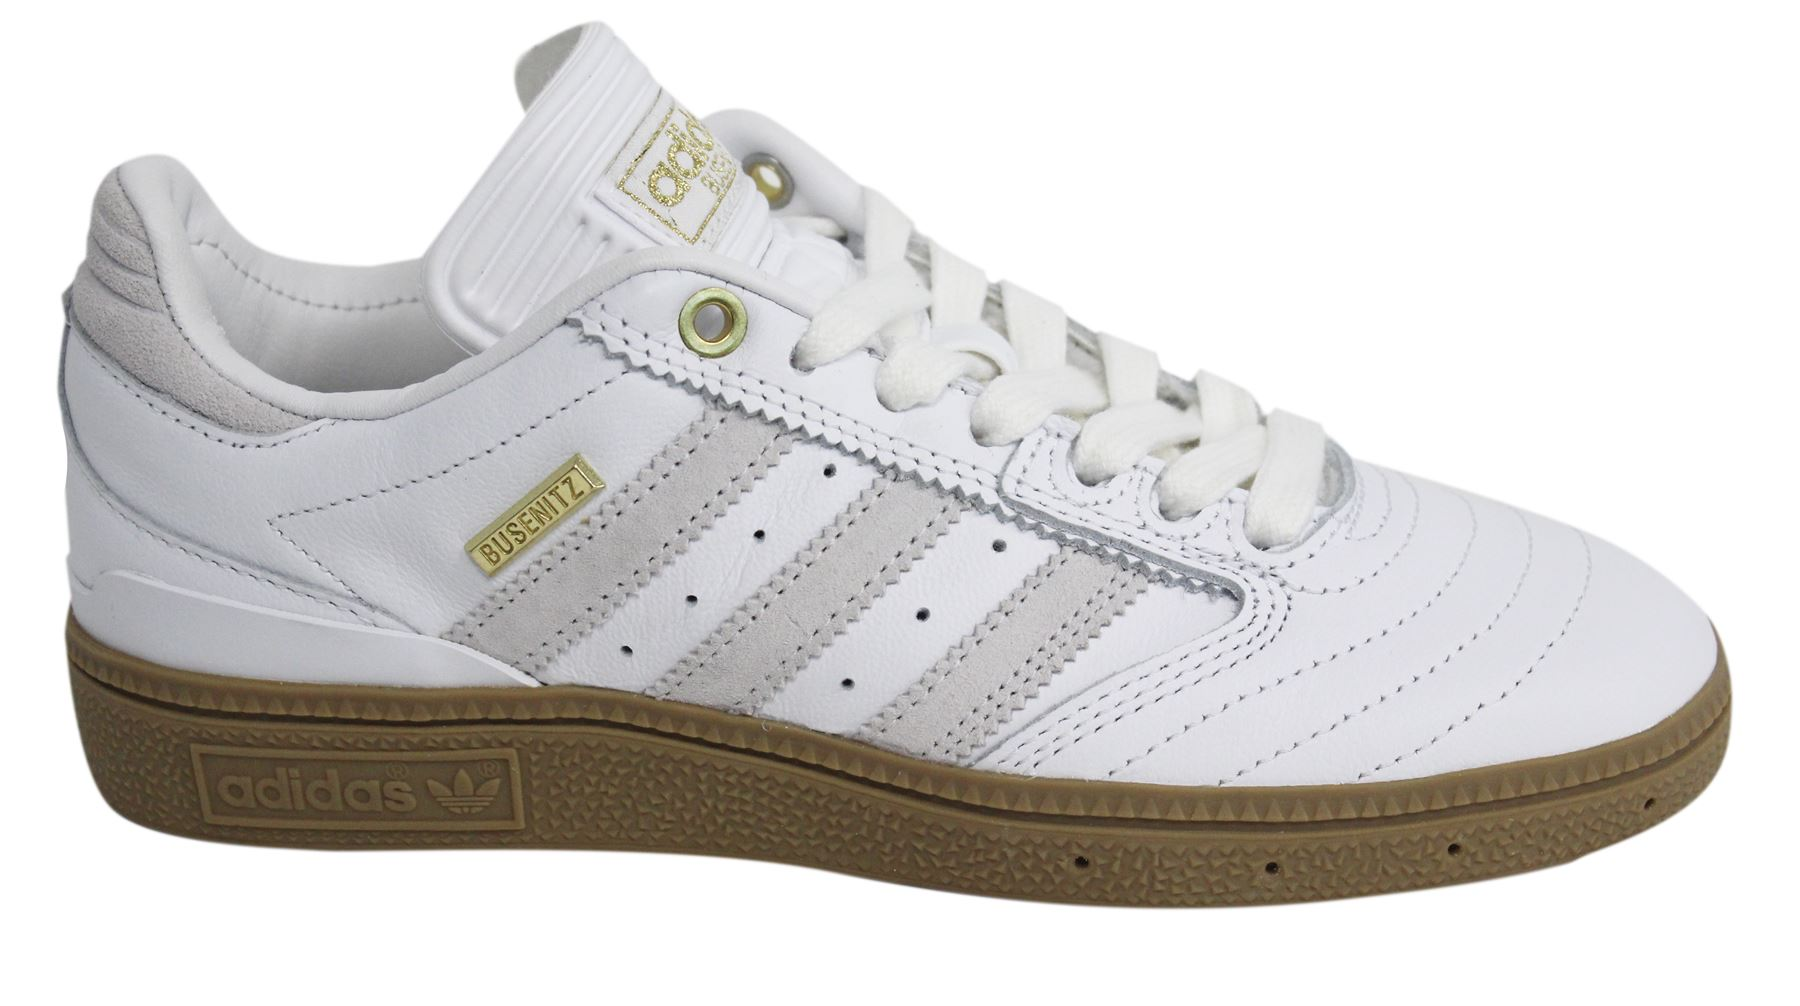 Details about Adidas Busenitz 10 Yr Anniversary Lace Up White Leather Skateboarding Trainers